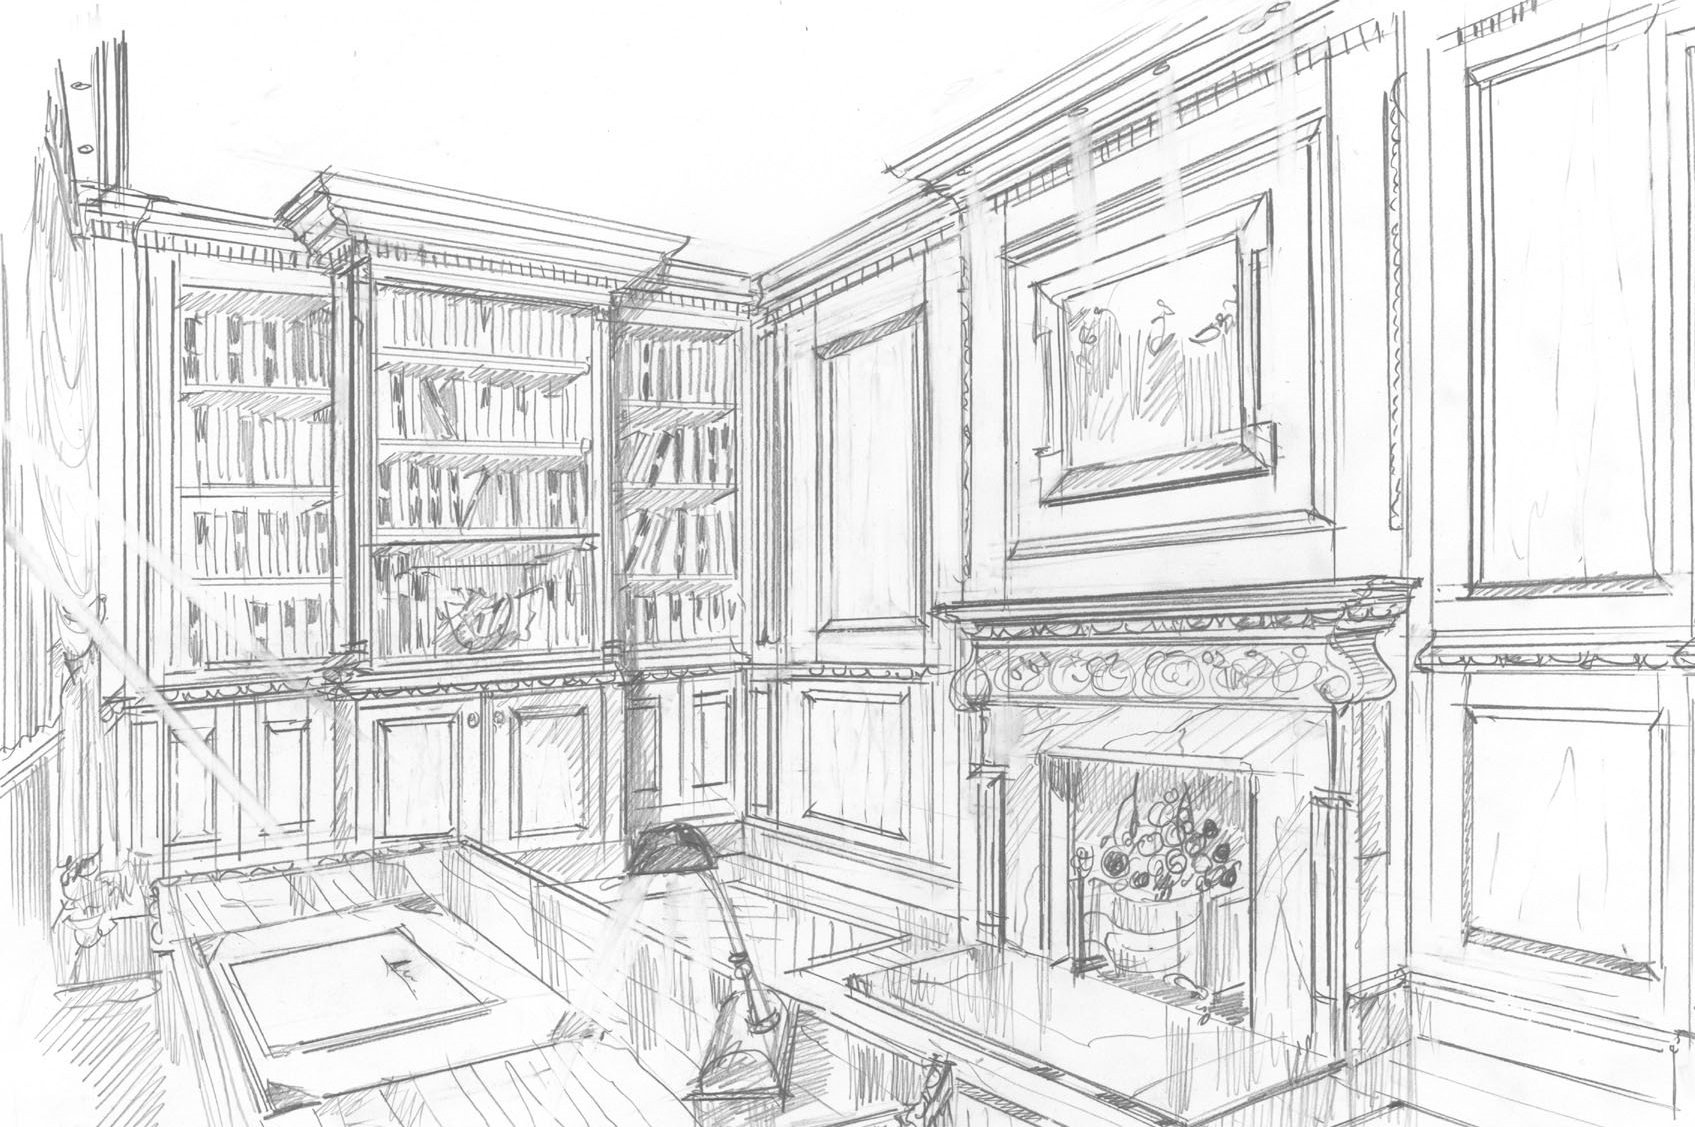 Period Joinery and Interiors panelled library skech